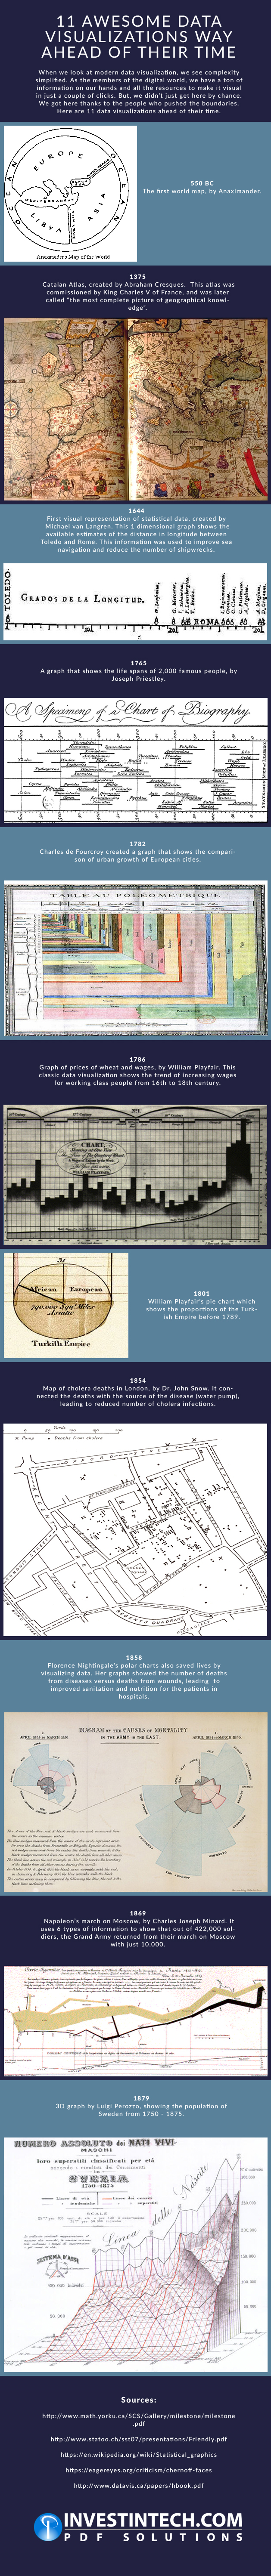 11 Awesome Data Visualizations Way Ahead of Their Time by InvestinTech.com